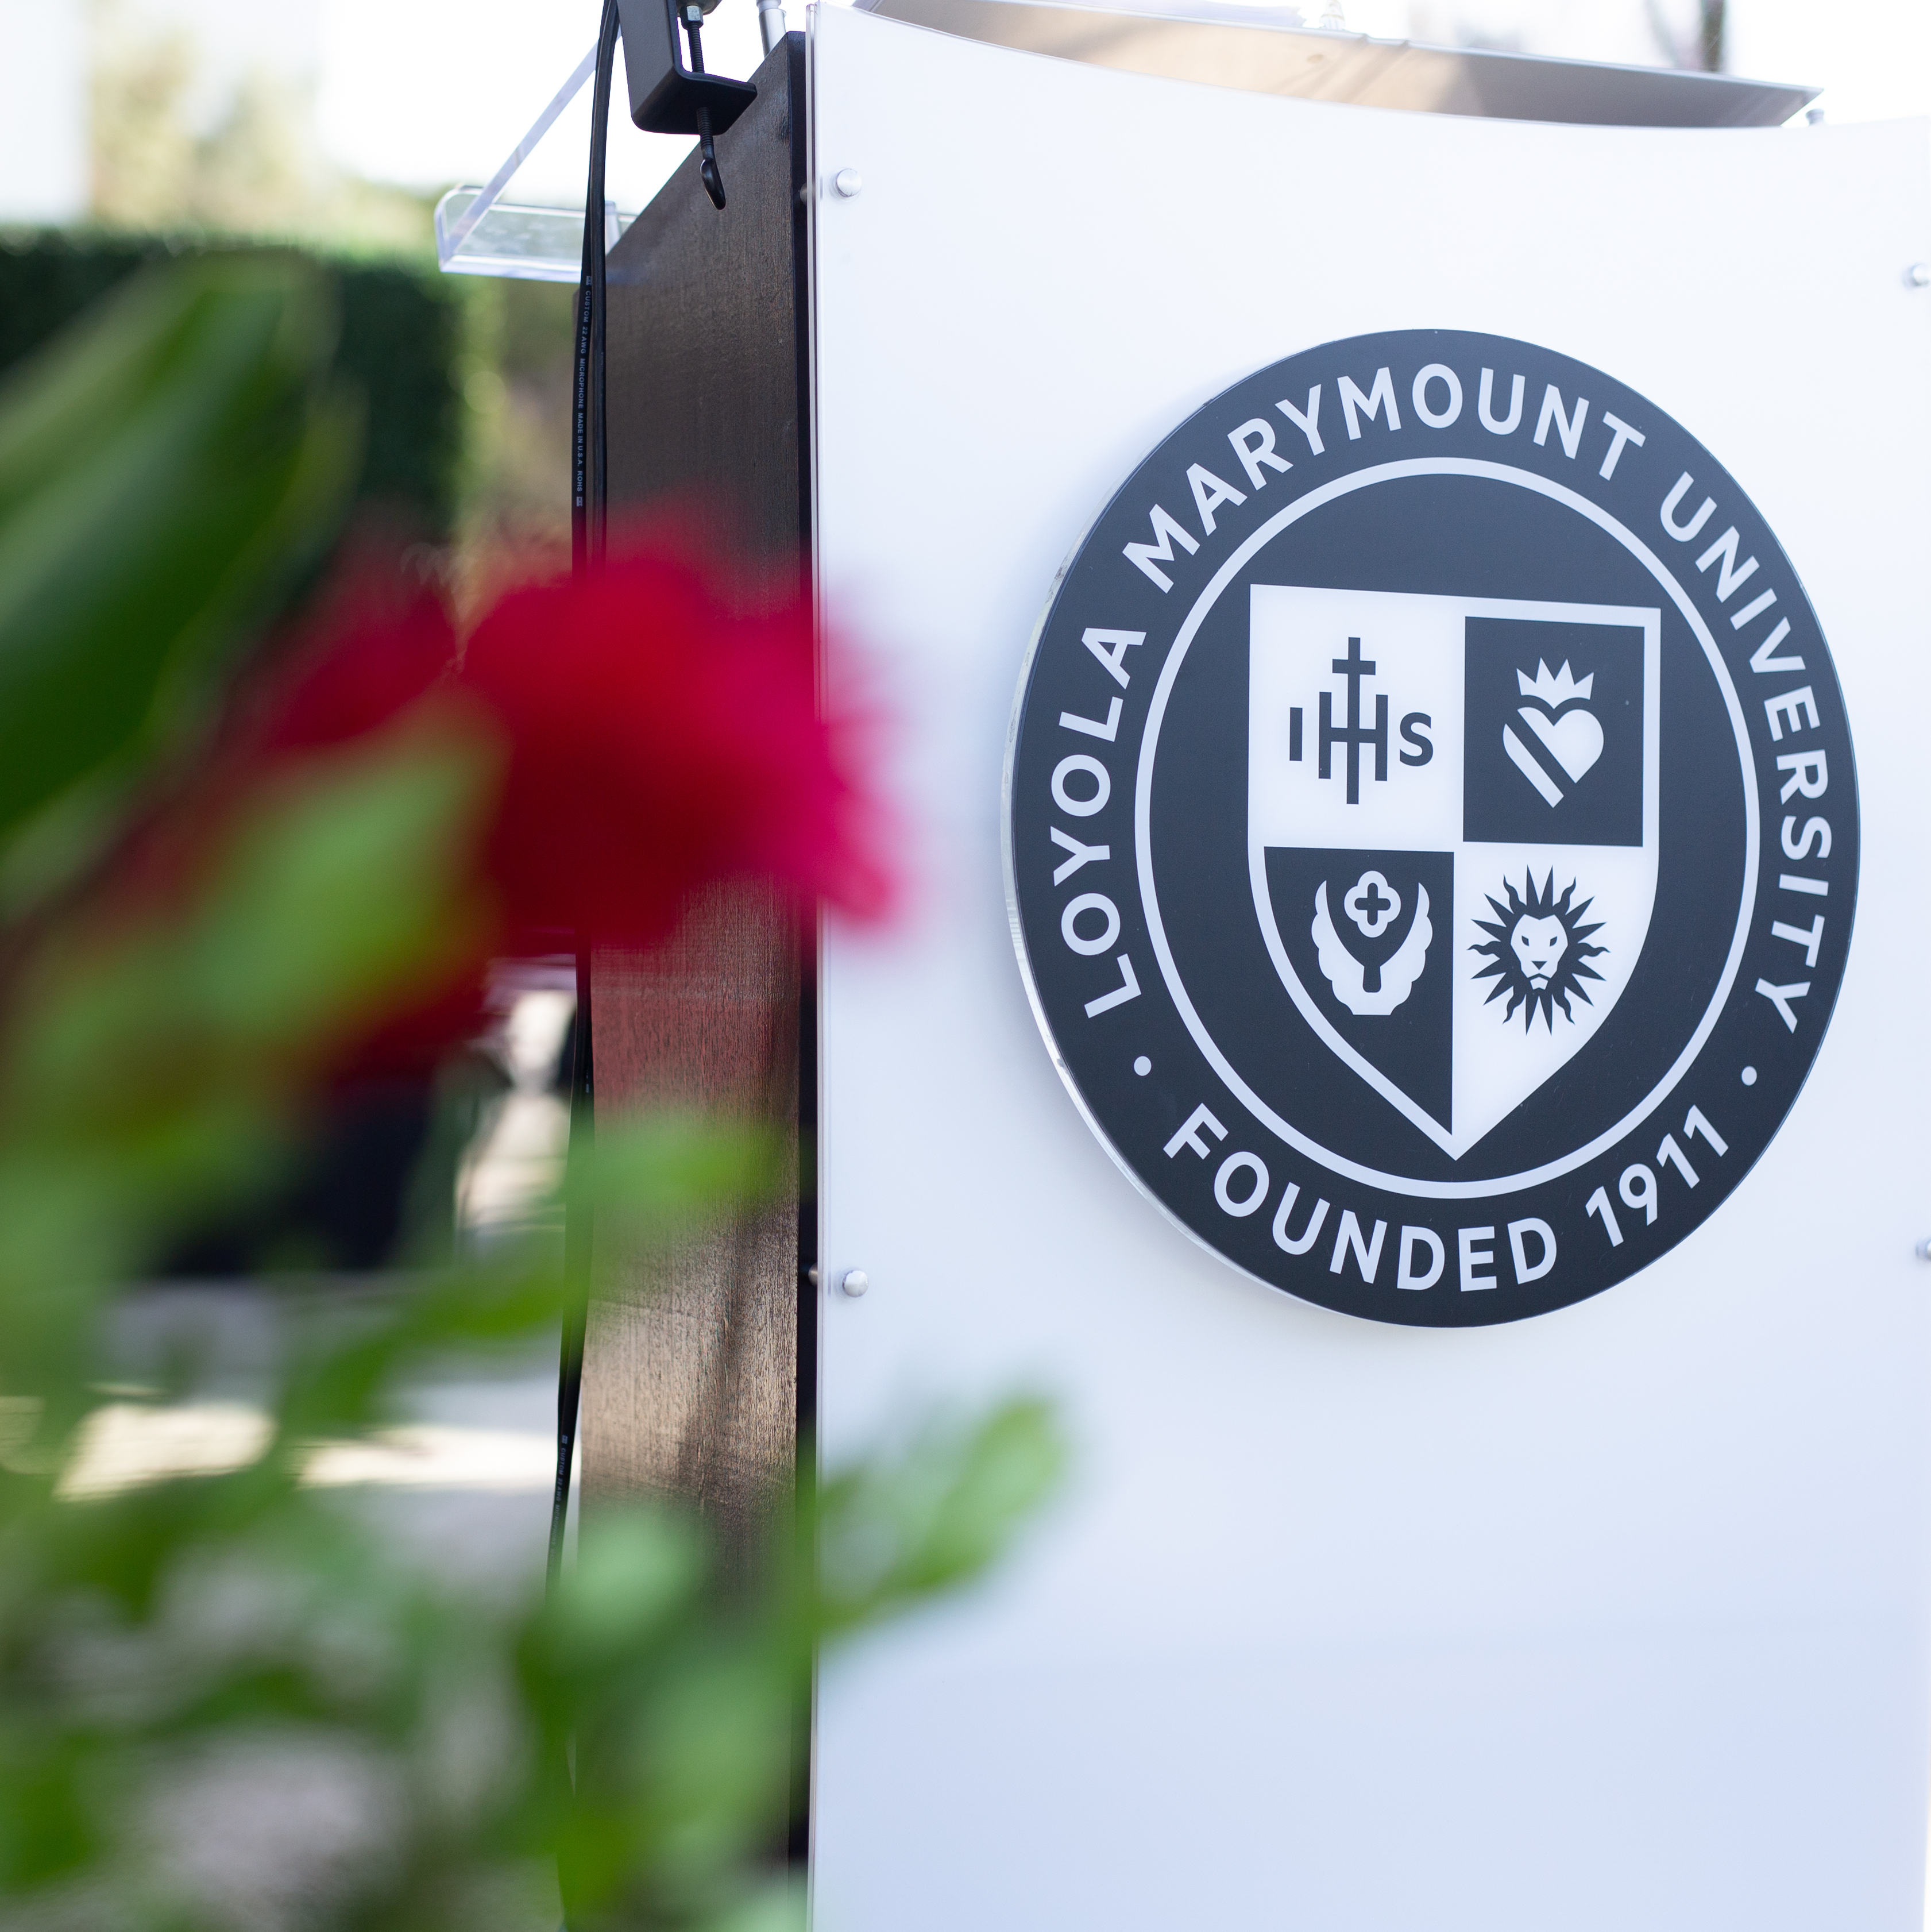 Podium with LMU seal